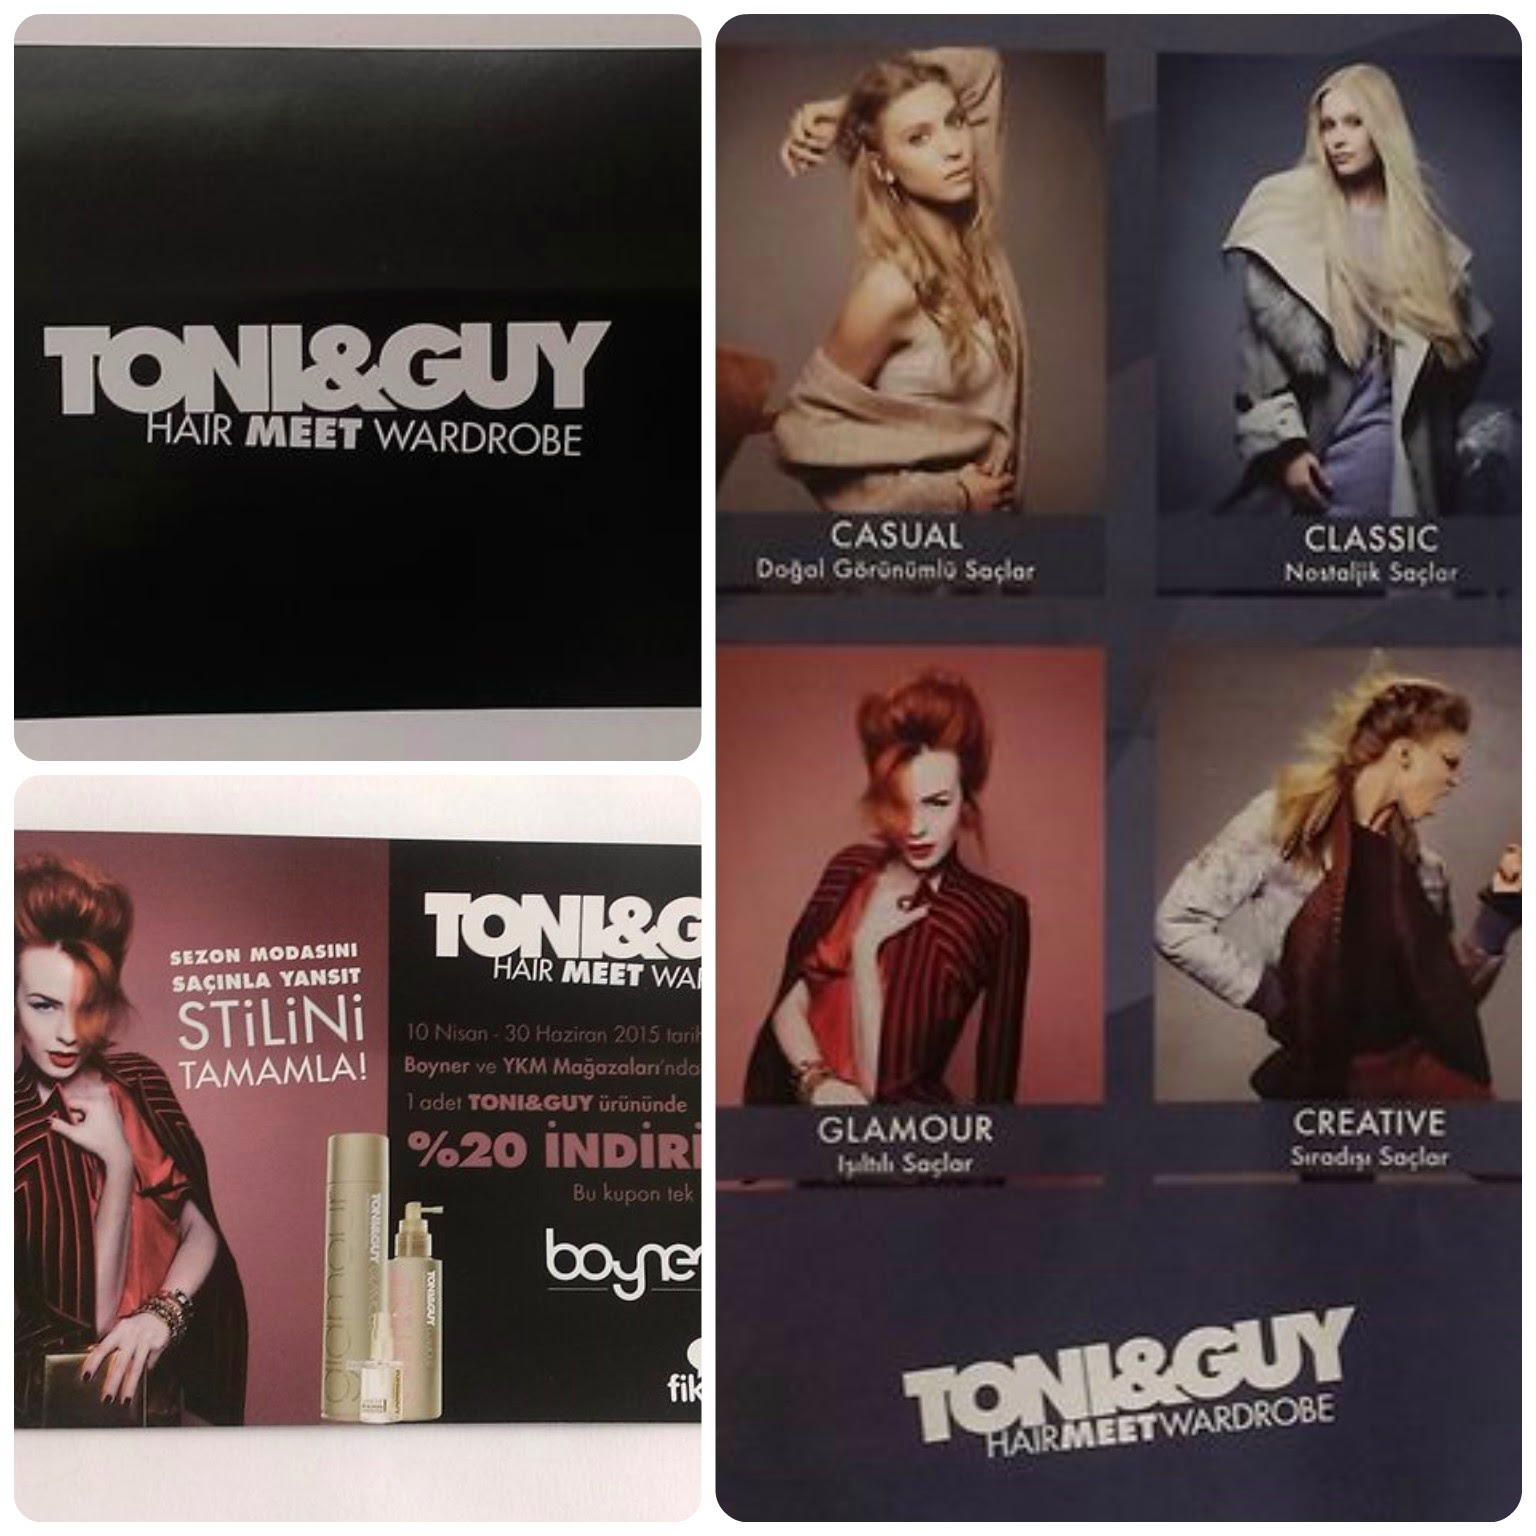 toni and guy hair meet wardrobe design